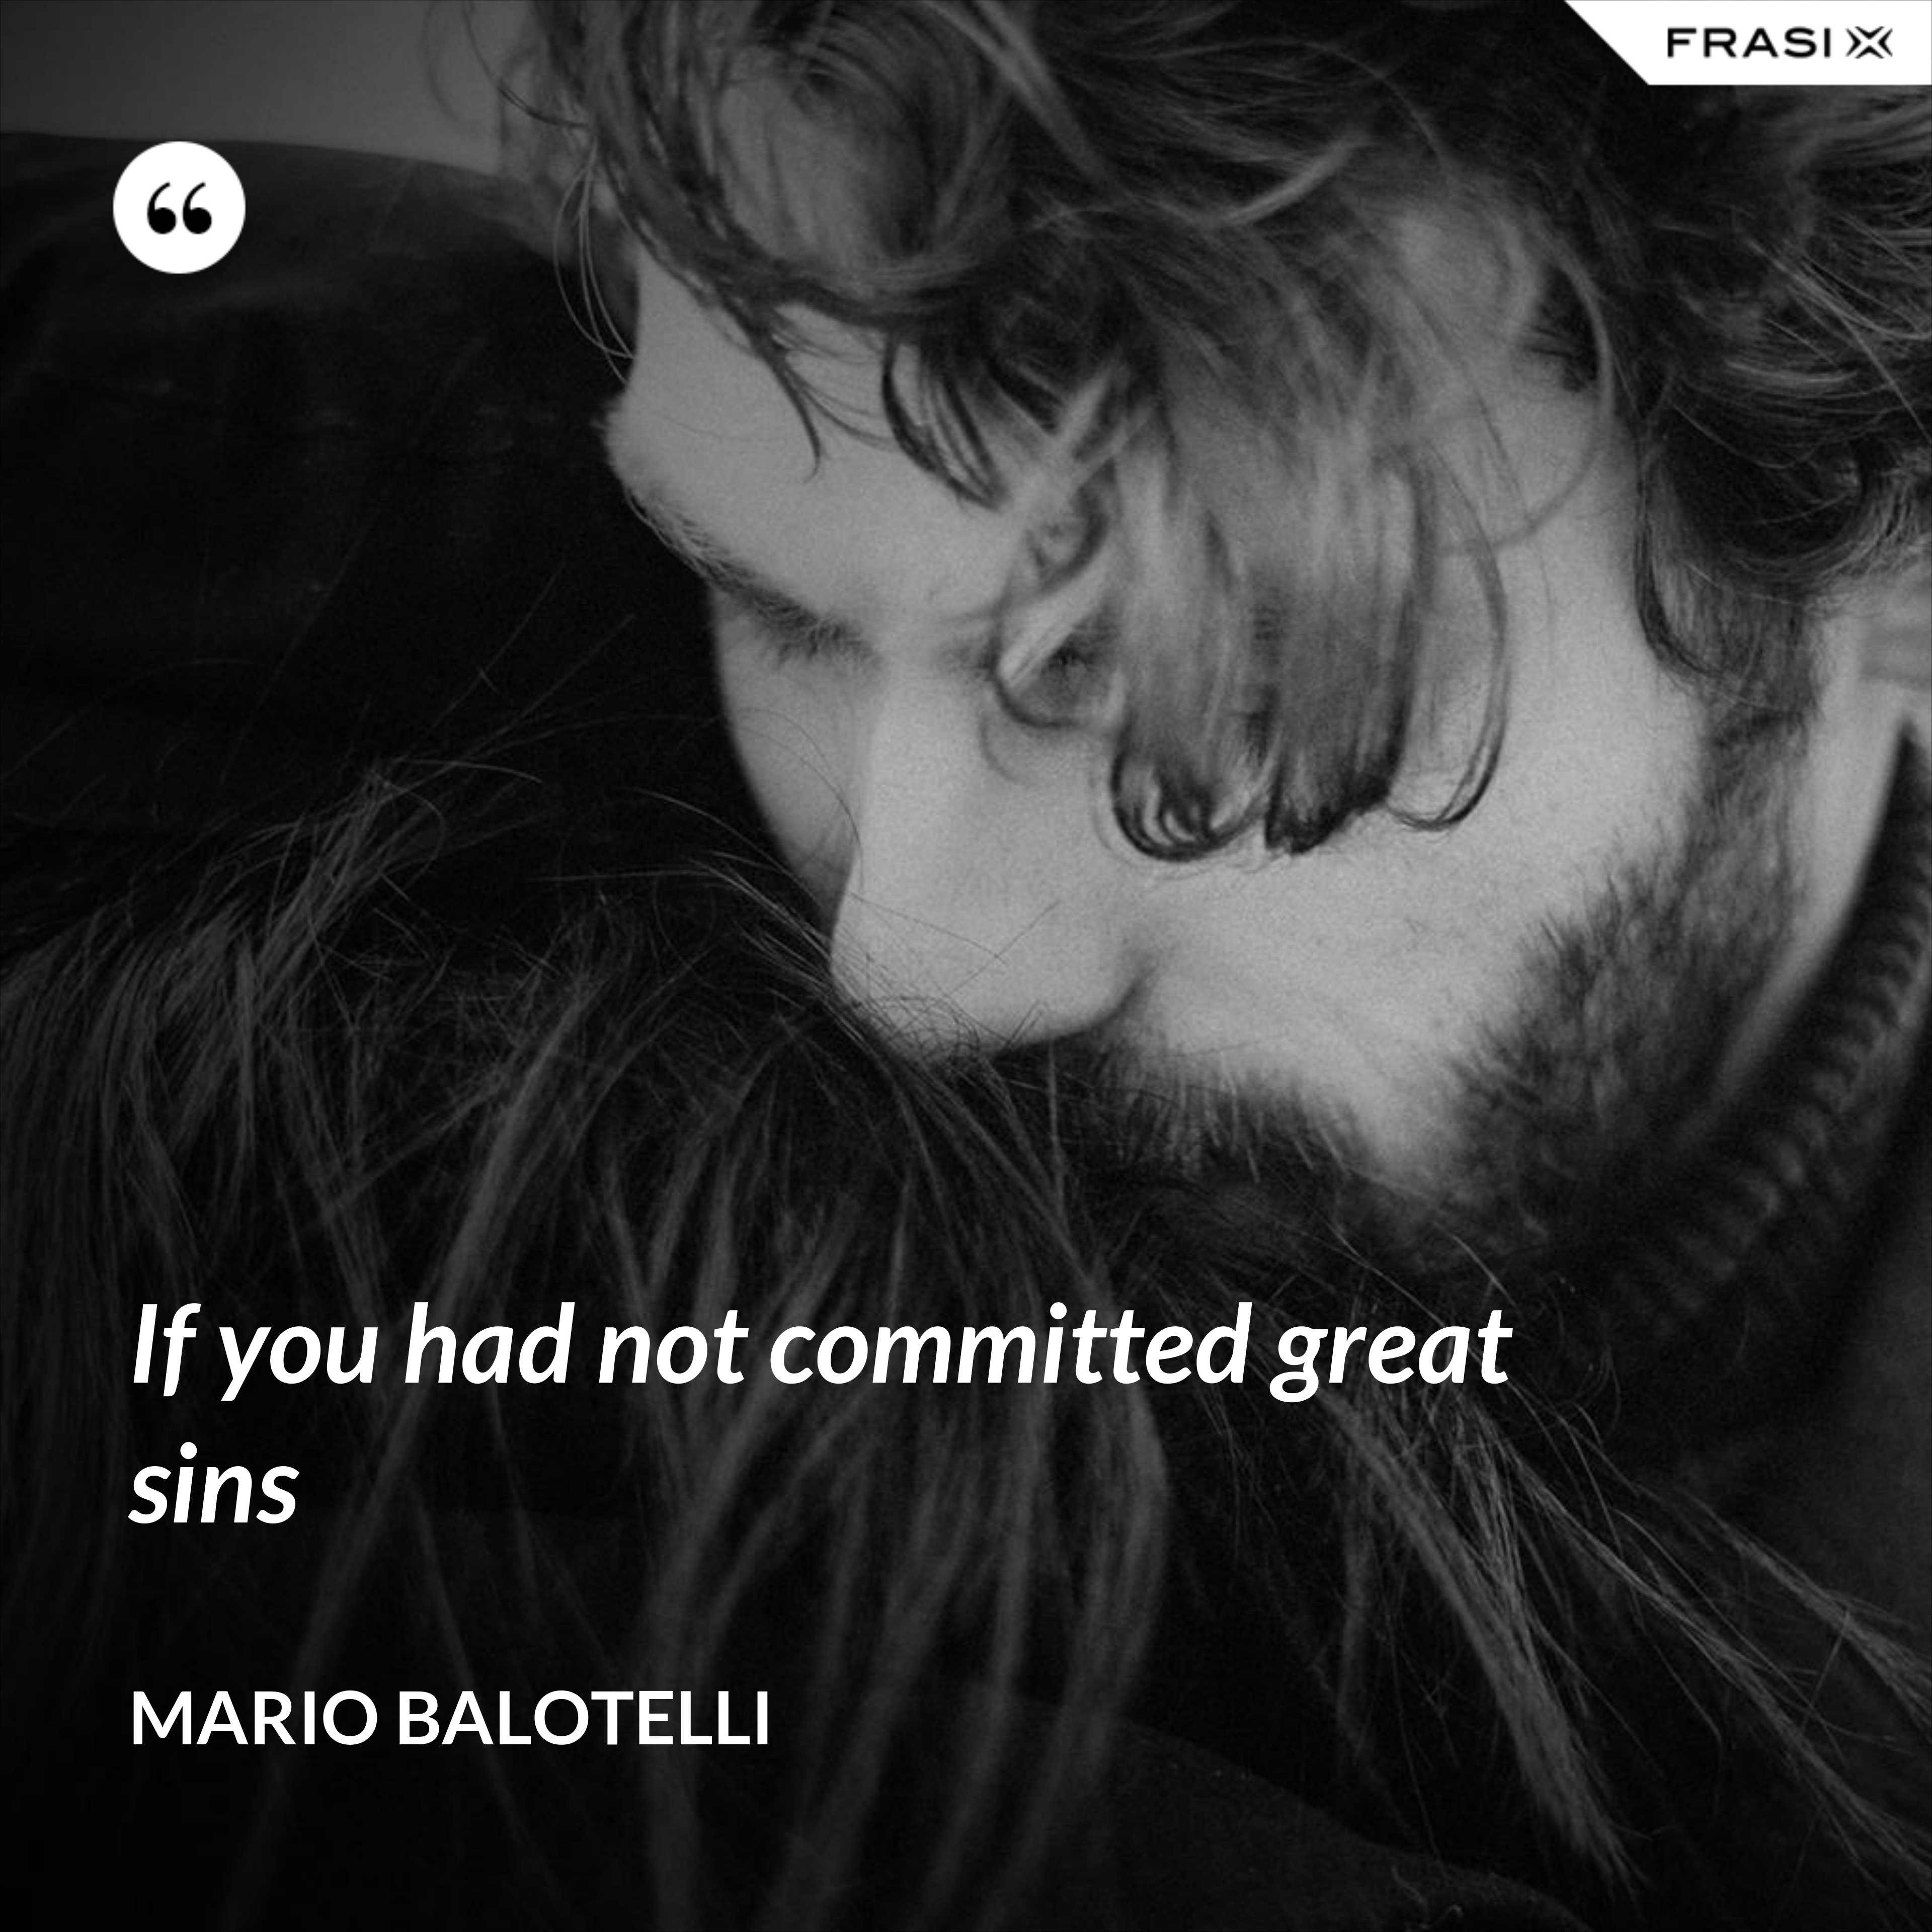 If you had not committed great sins - Mario Balotelli